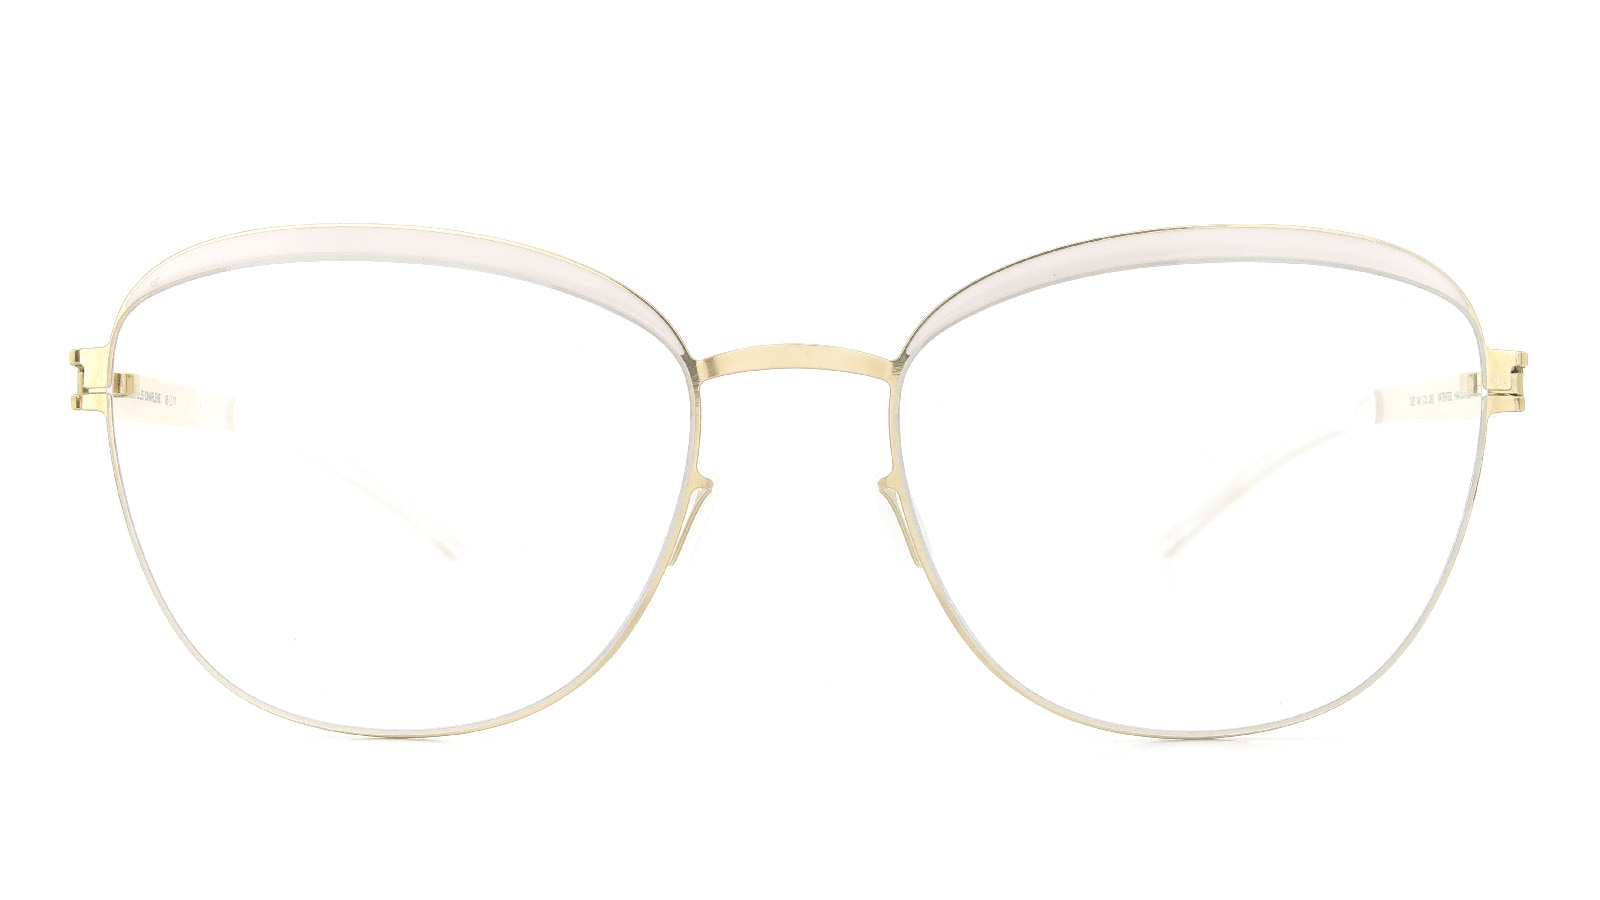 MYKITA [DECADES] CHARLENE 2